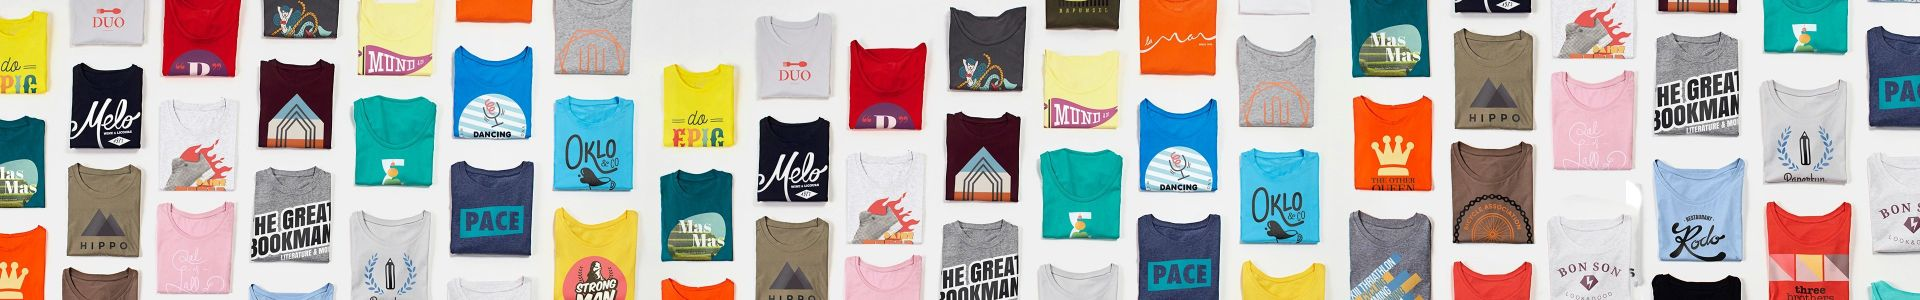 Create Event T-shirts | Camaloon